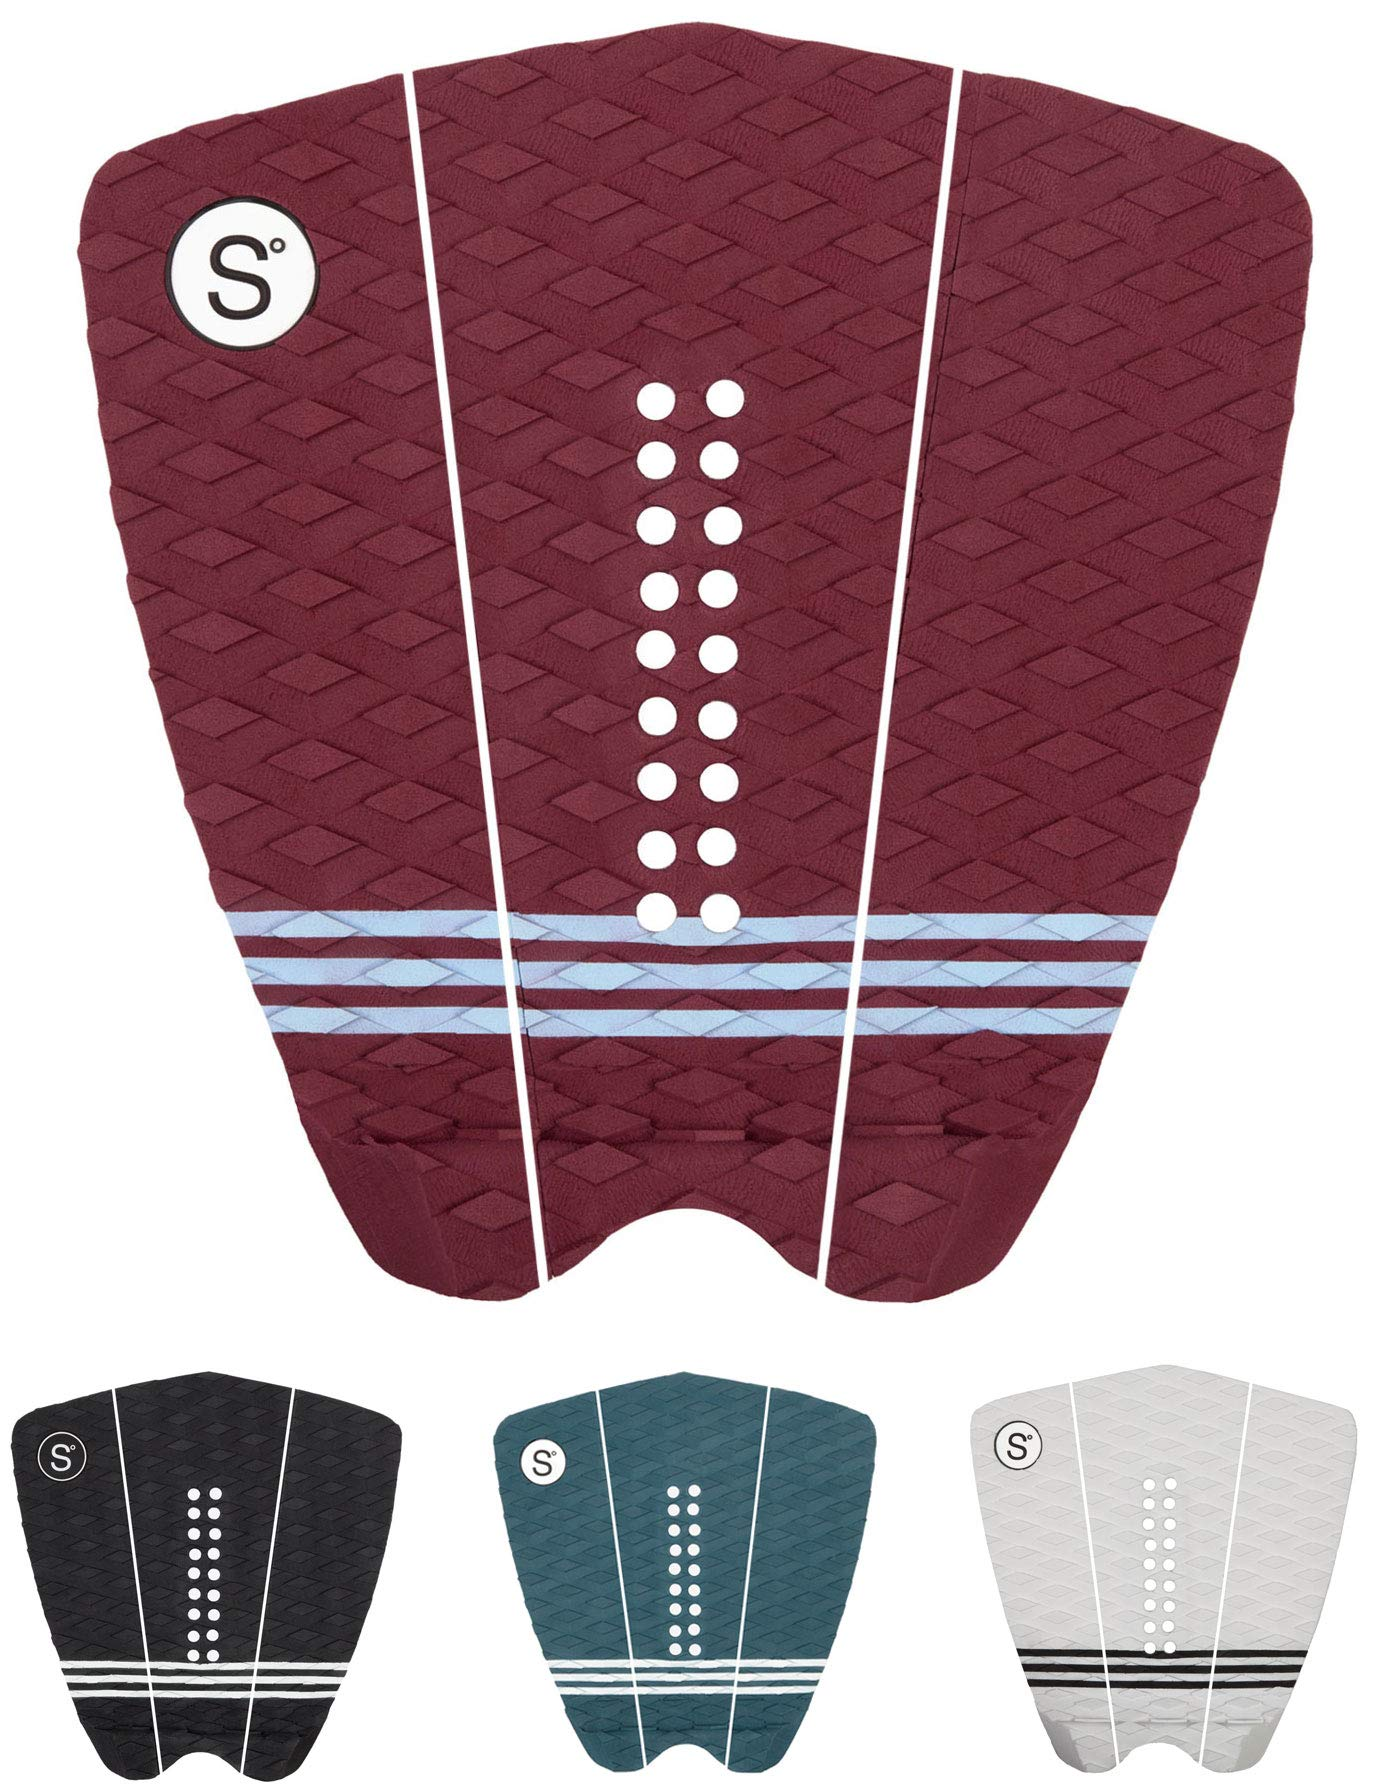 Sympl Surfboard Traction Pad • 3 Pieces • Maximum Grip, 3M Adhesive for Surfboard, Skimboard, Longboard • [Choose Color] (Maroon) by Sympl Supply Co.